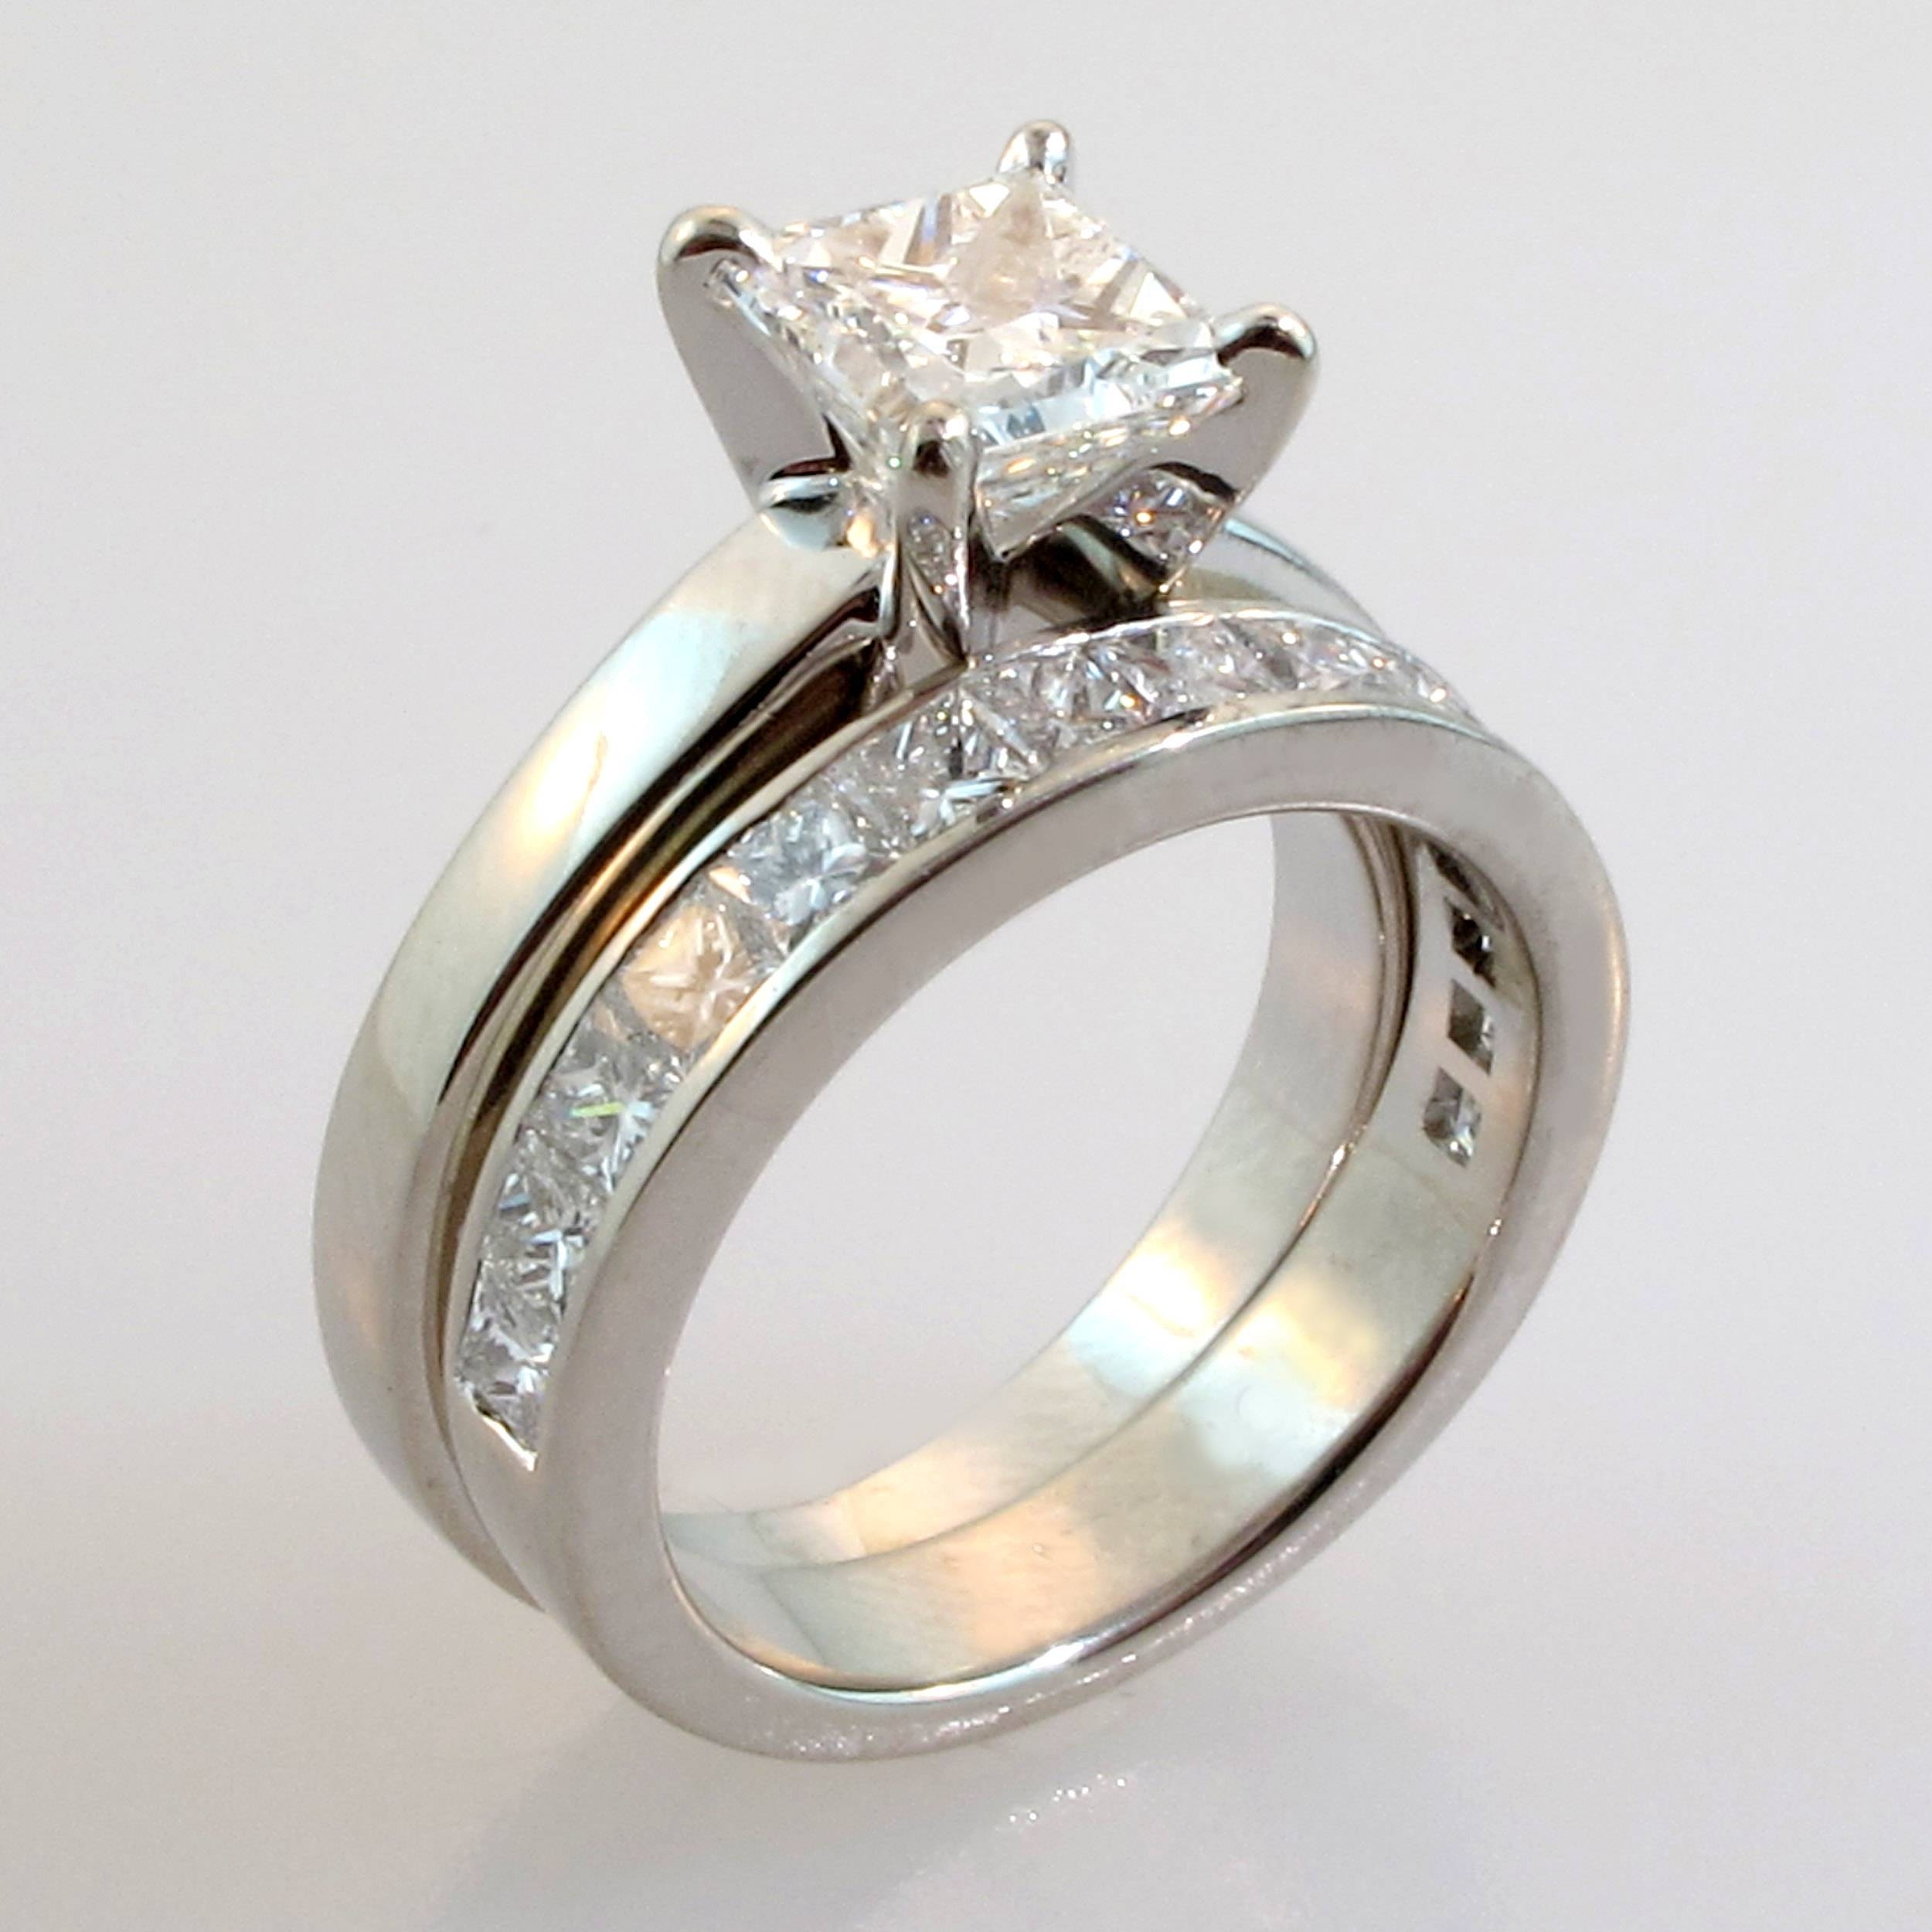 Wedding Rings : Engagment Ring Set White Gold Engagement Ring Sets With Regard To Wedding And Engagement Ring Sets (View 10 of 15)